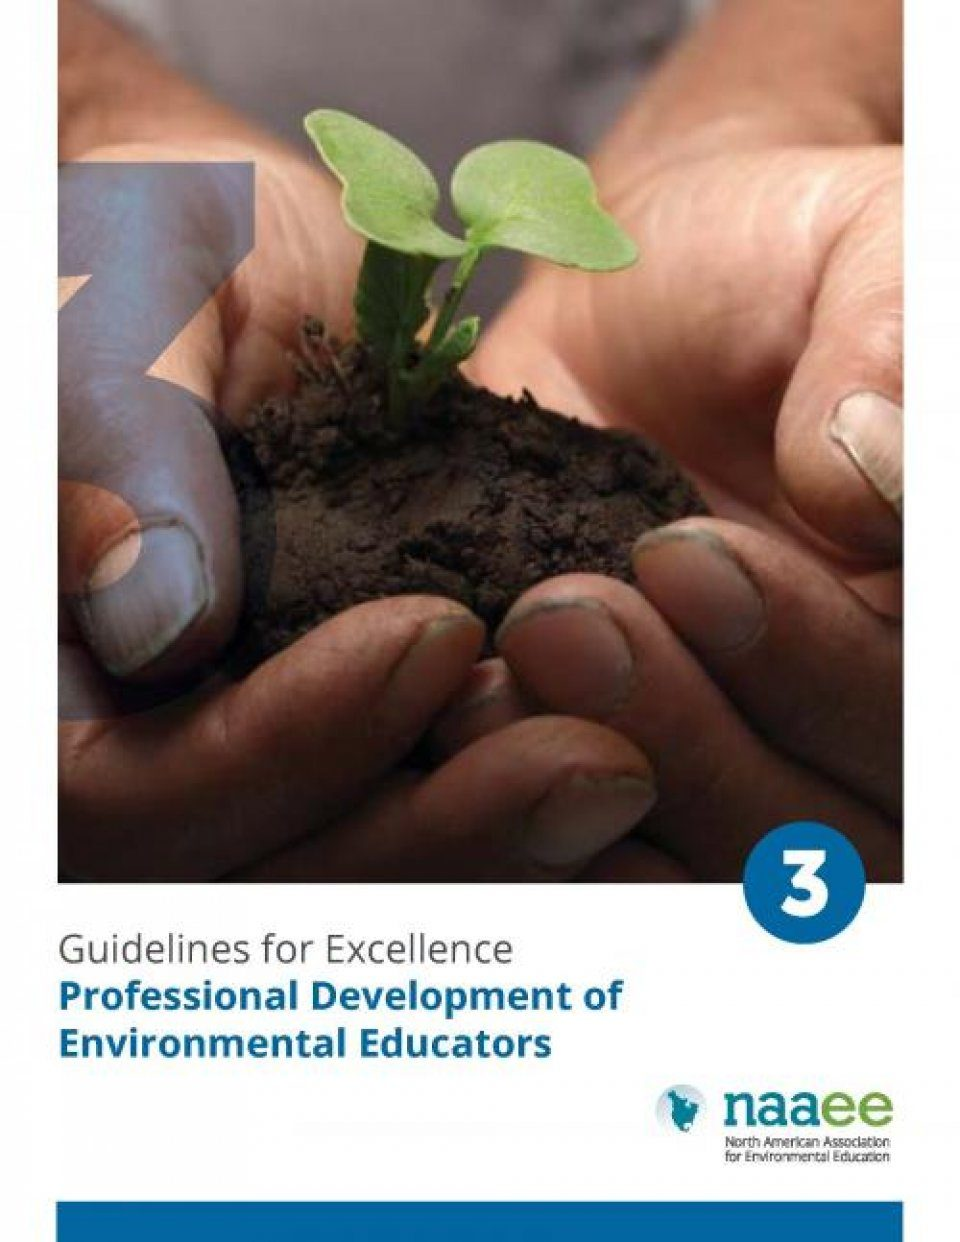 Guidelines for Excellence: Professional Development of Environmental Educators